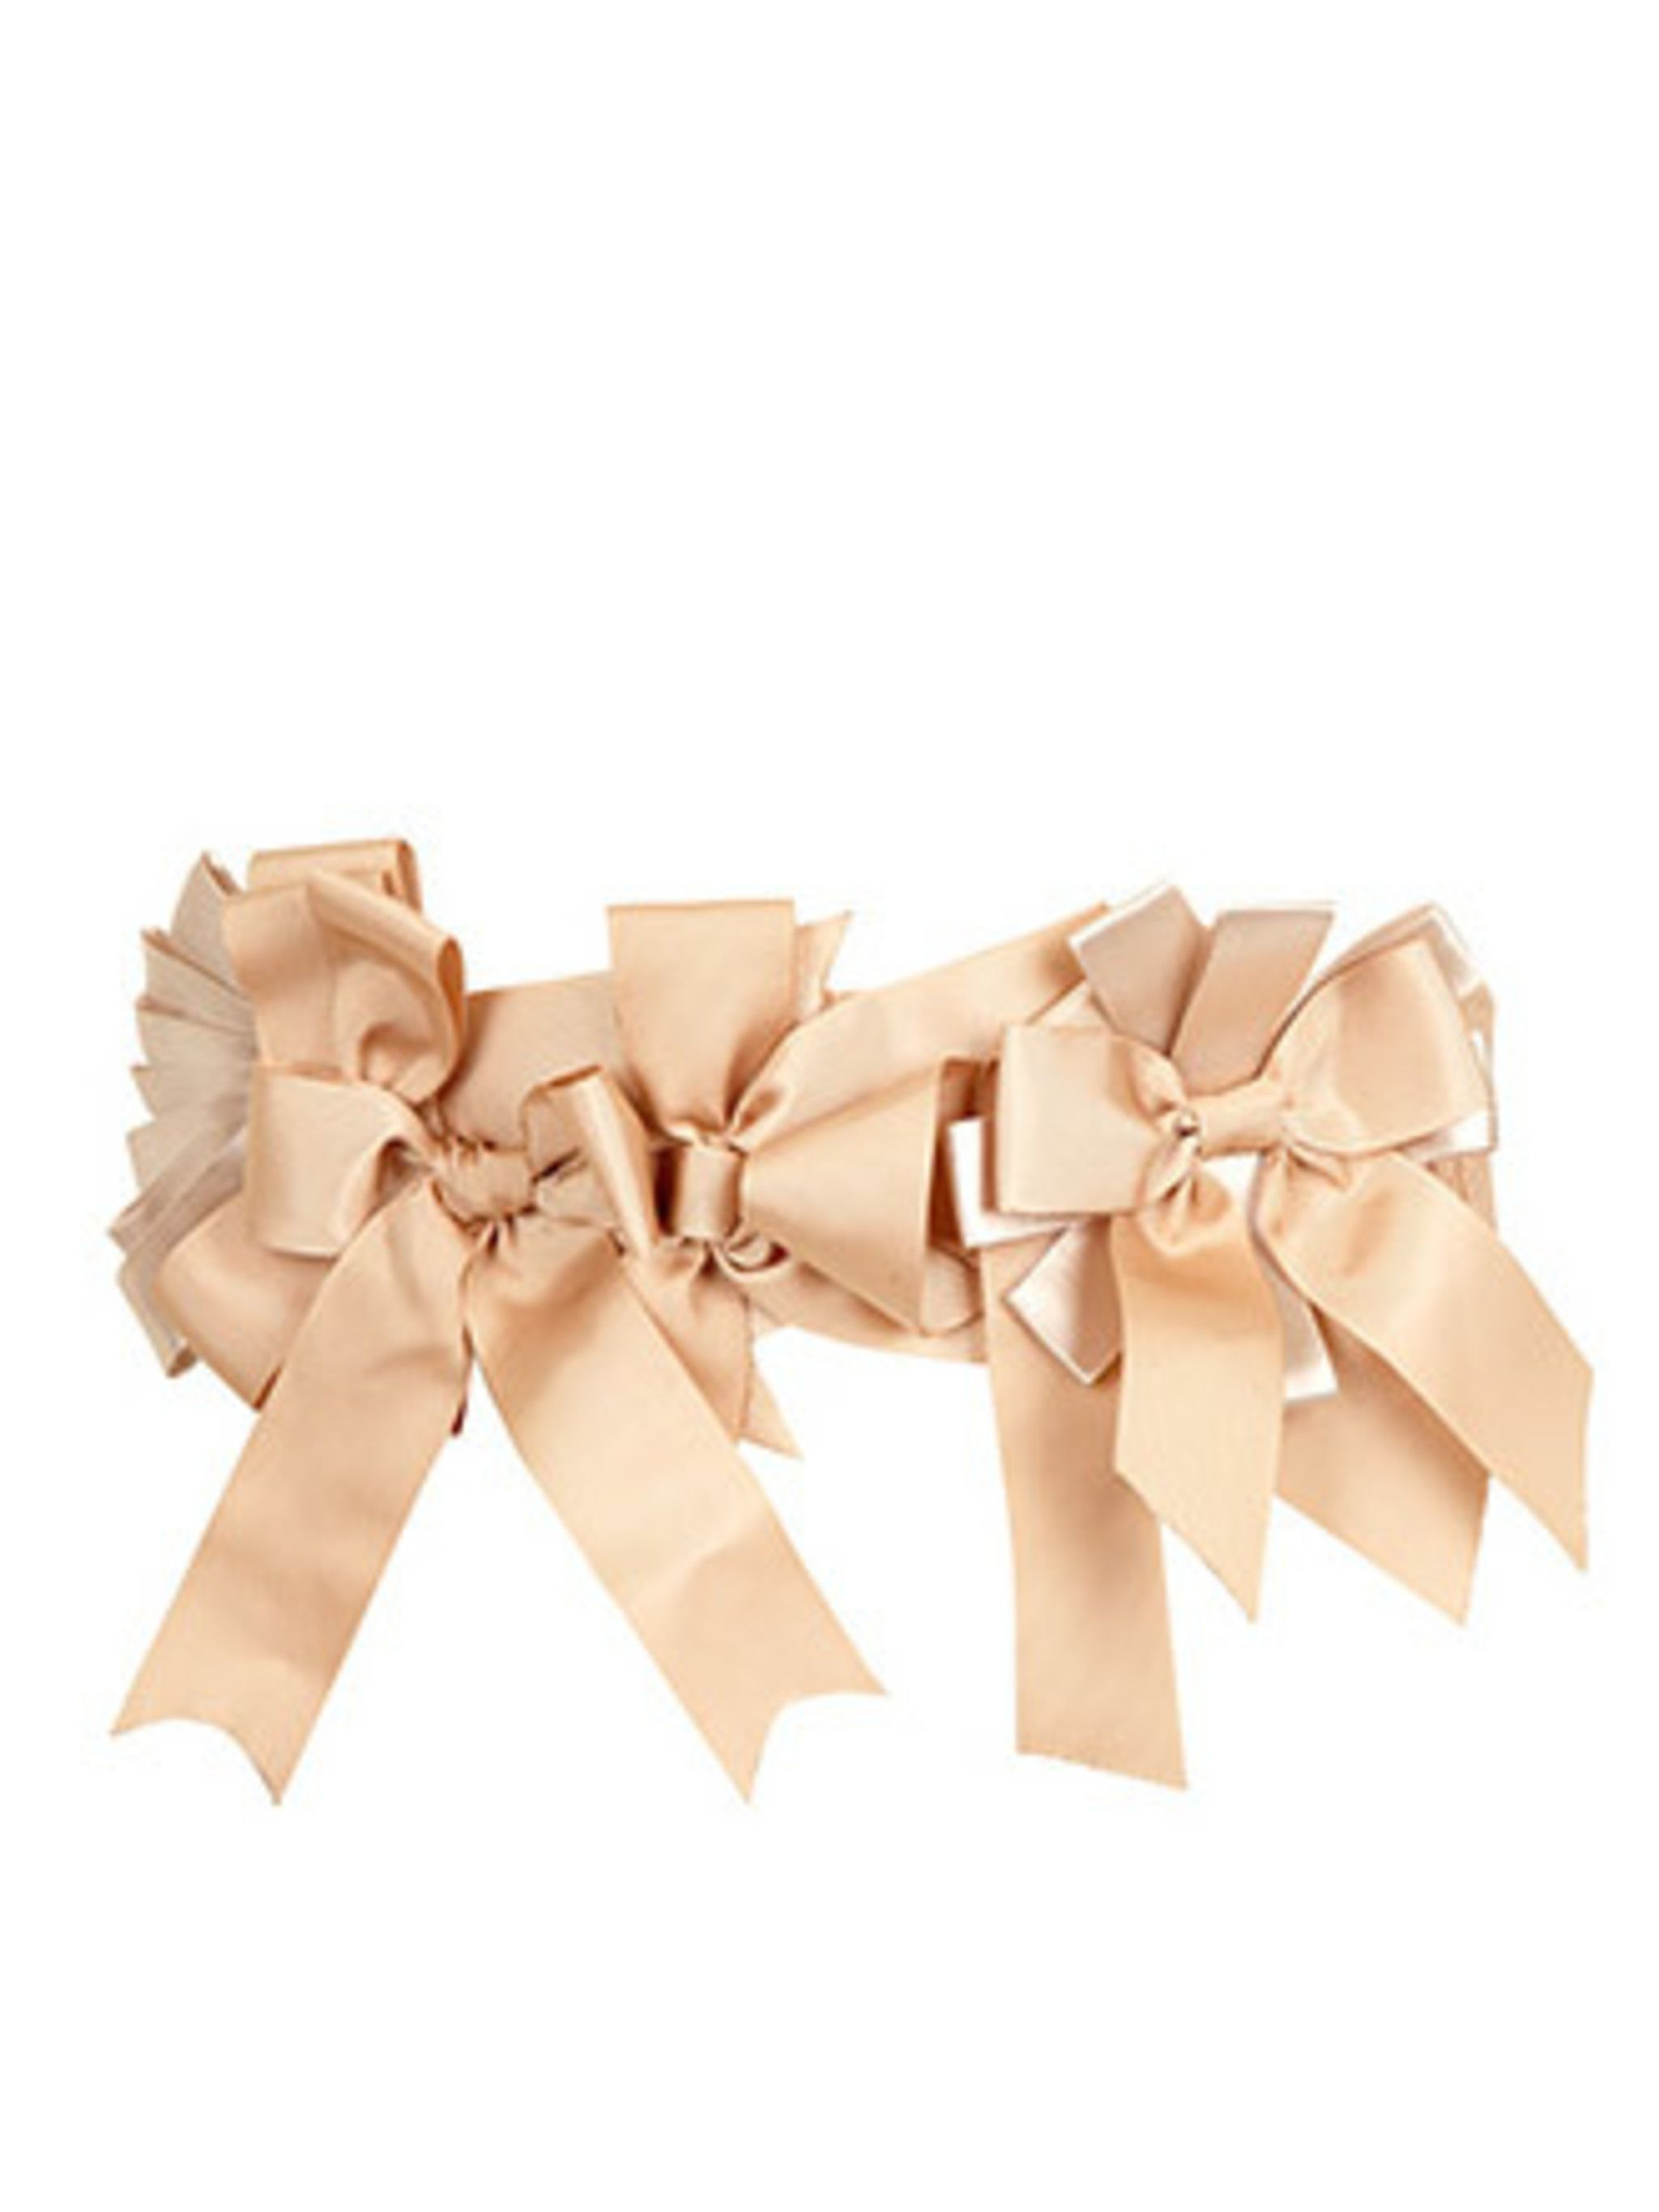 "<p>River Island's belts are always a bit more unusual than other high street offerings; this ribbon belt is no exception. Use it to add an extra pretty edge to all your dresses.</p><p>Belt, £19.99 by <a href=""http://xml.riverisland.com/flash/content.php"">"